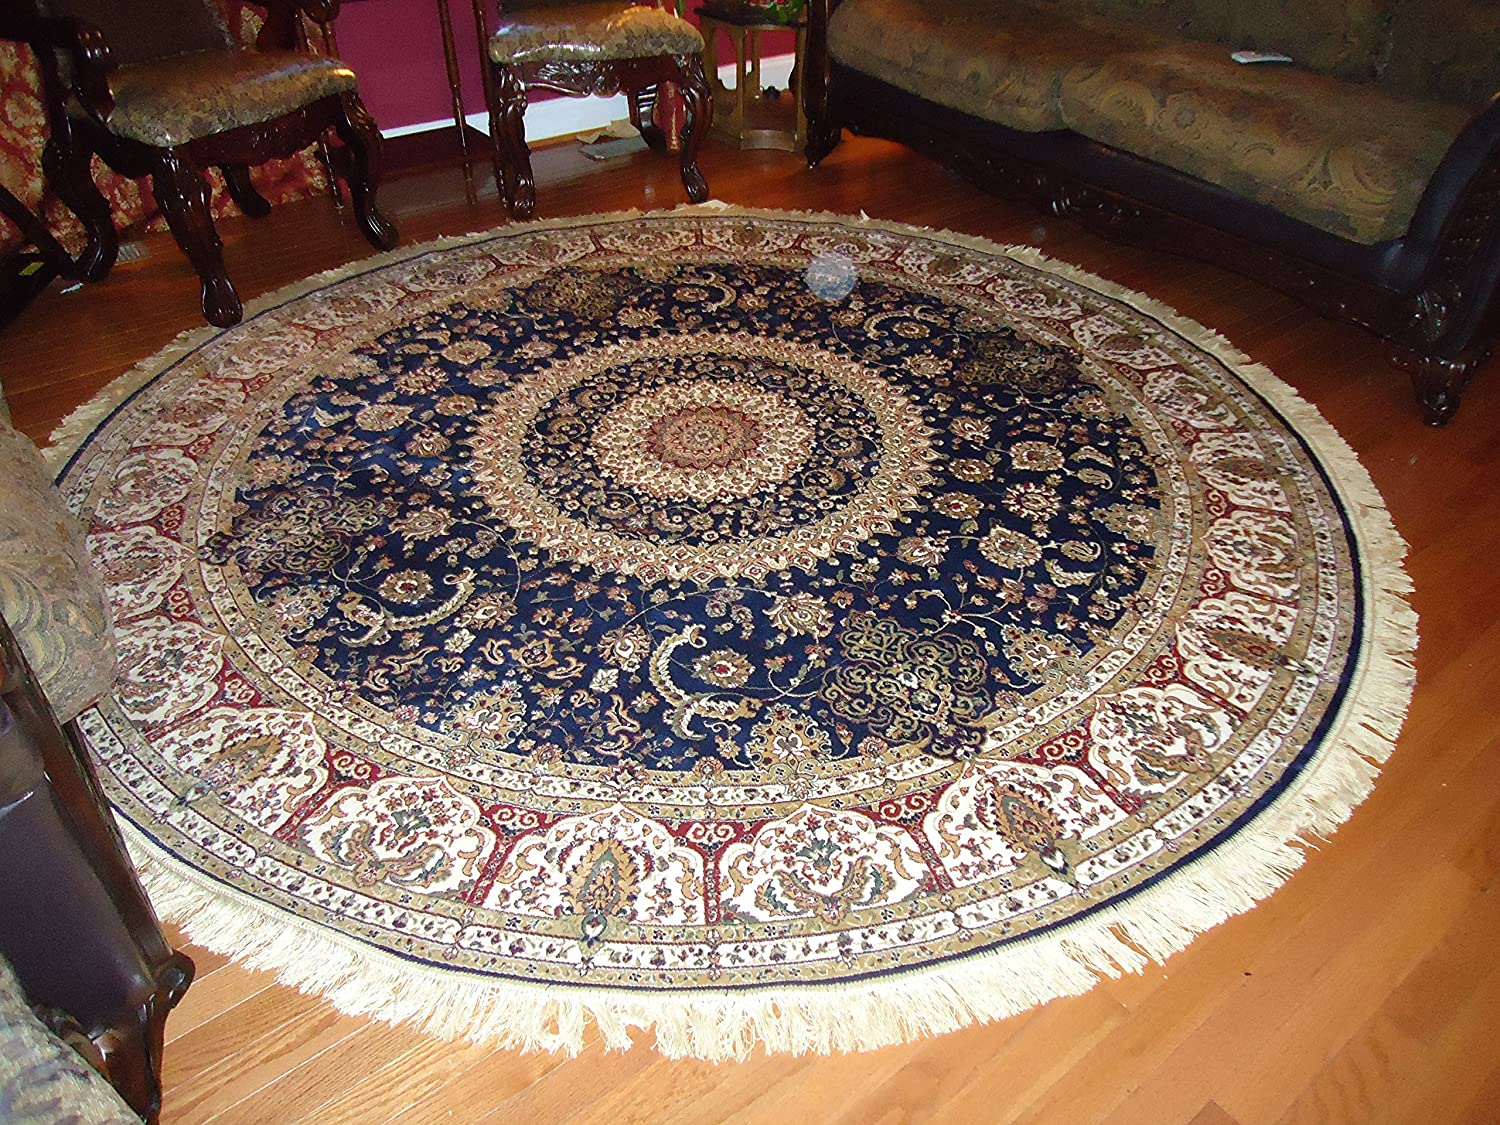 Amazon.com: Luxury Large Round Rugs Silk Traditional Area Rugs Navy Circle  Rugs Persian Area Rugs 8x8 Circle Rug Living Room Round Shape Rugs Silk Low  Pile ...